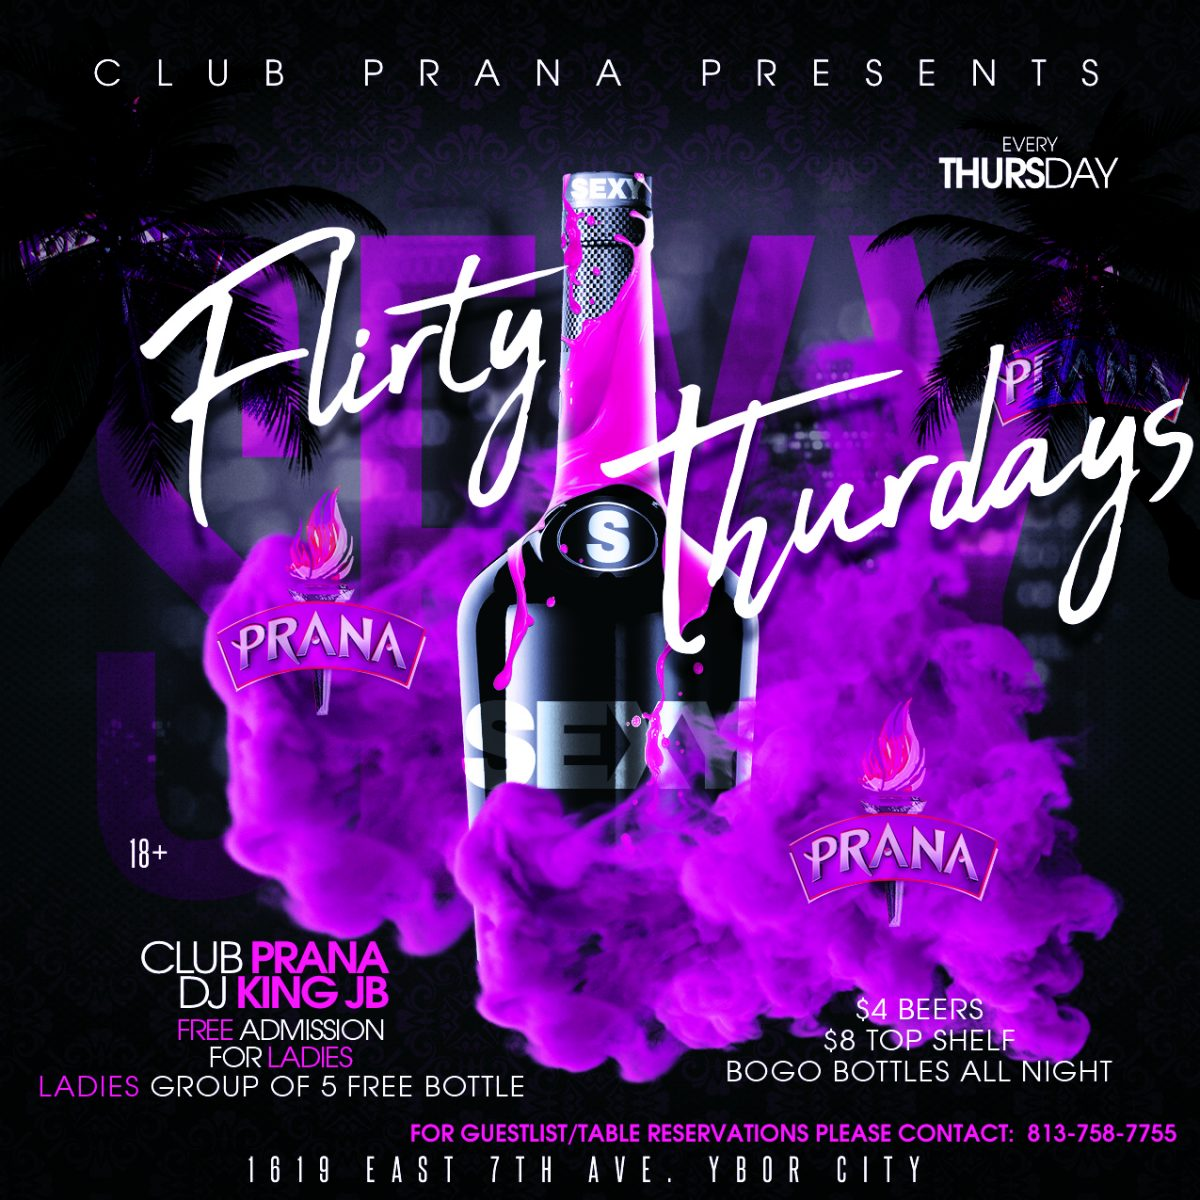 Club Prana | Tampa's Premier Night Club in Ybor City